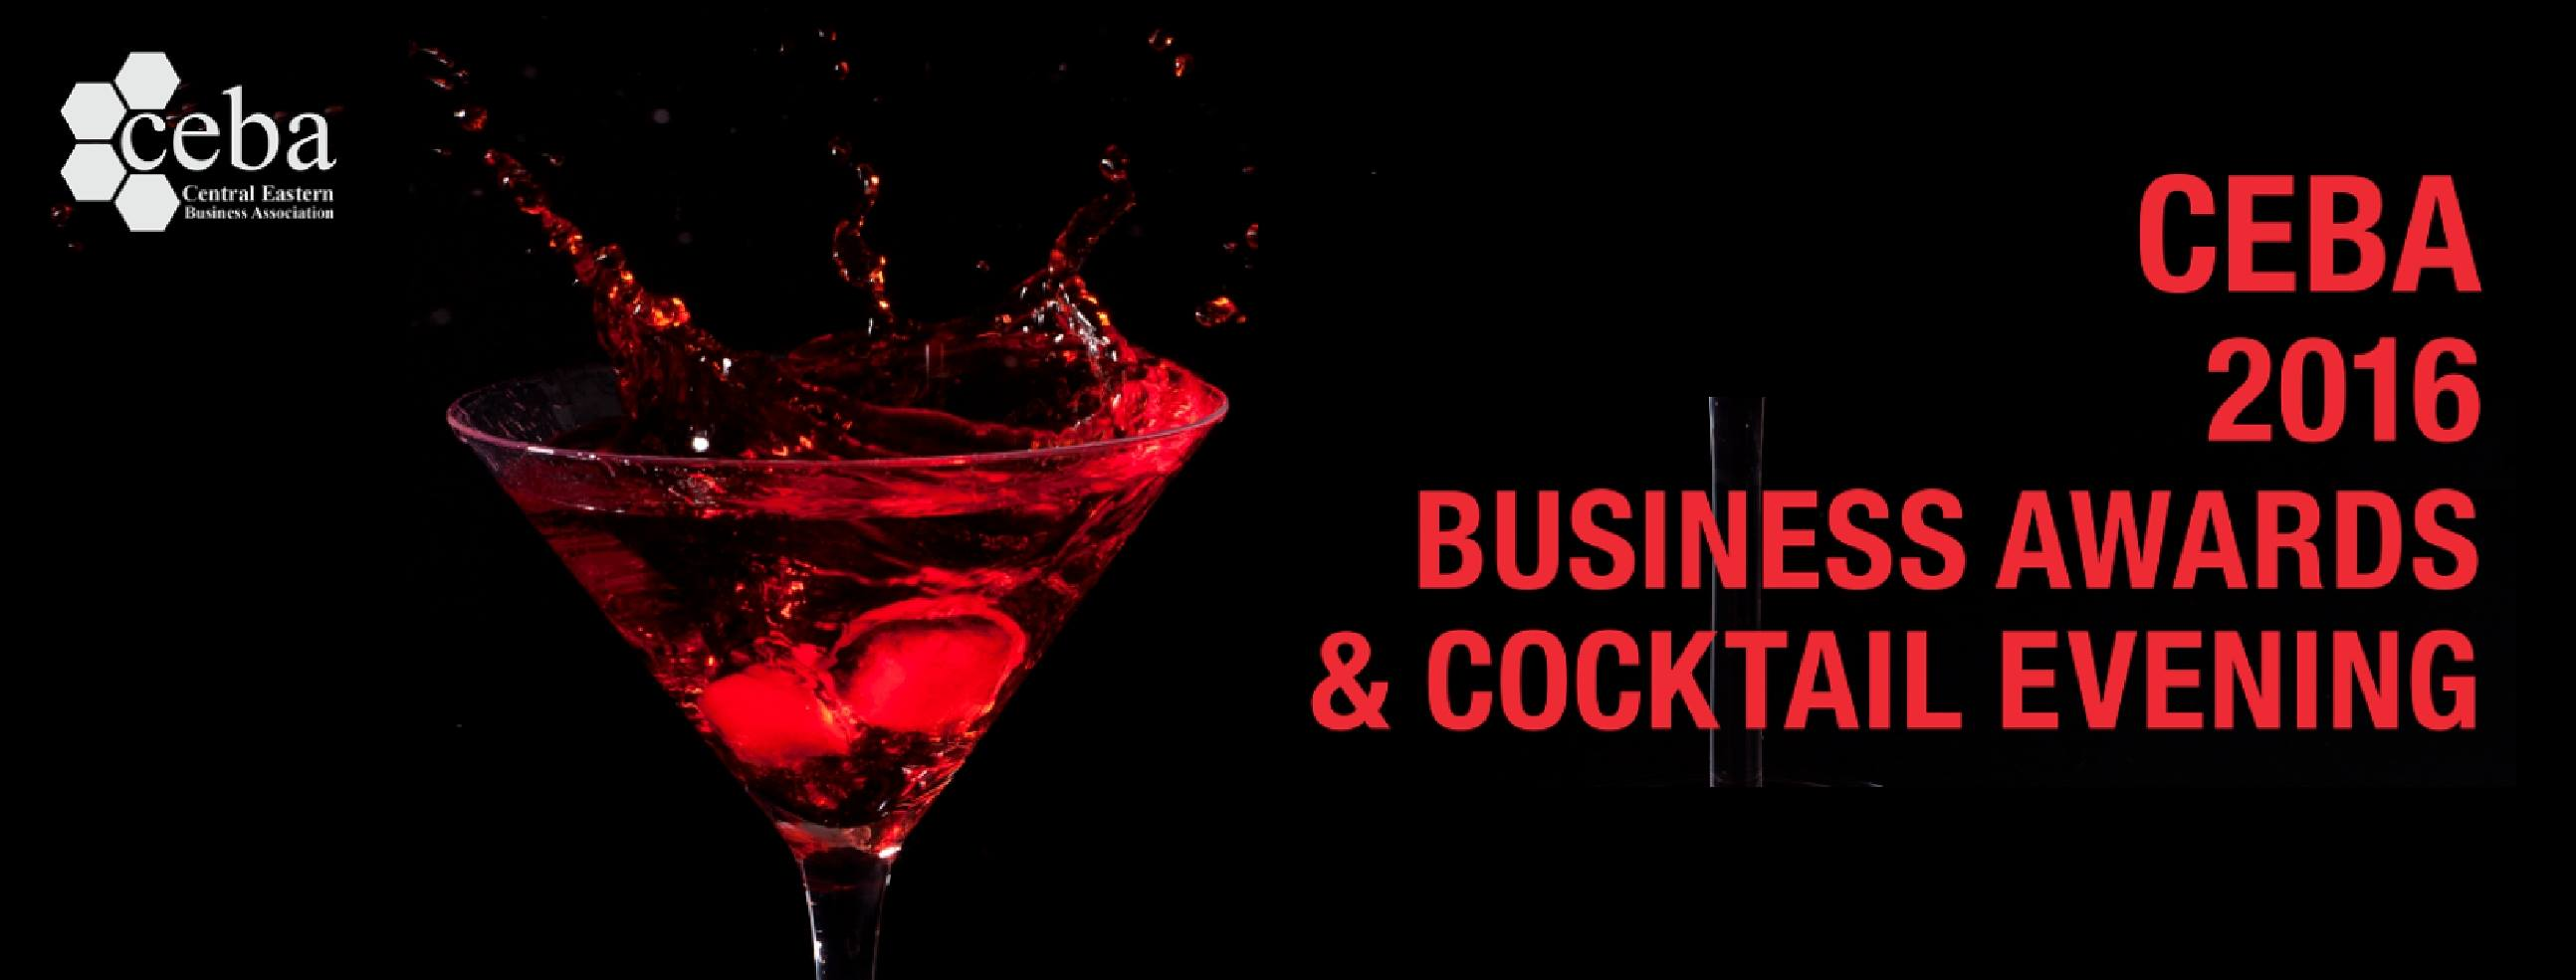 CEBA 2016 Business Awards & Cocktail Evening